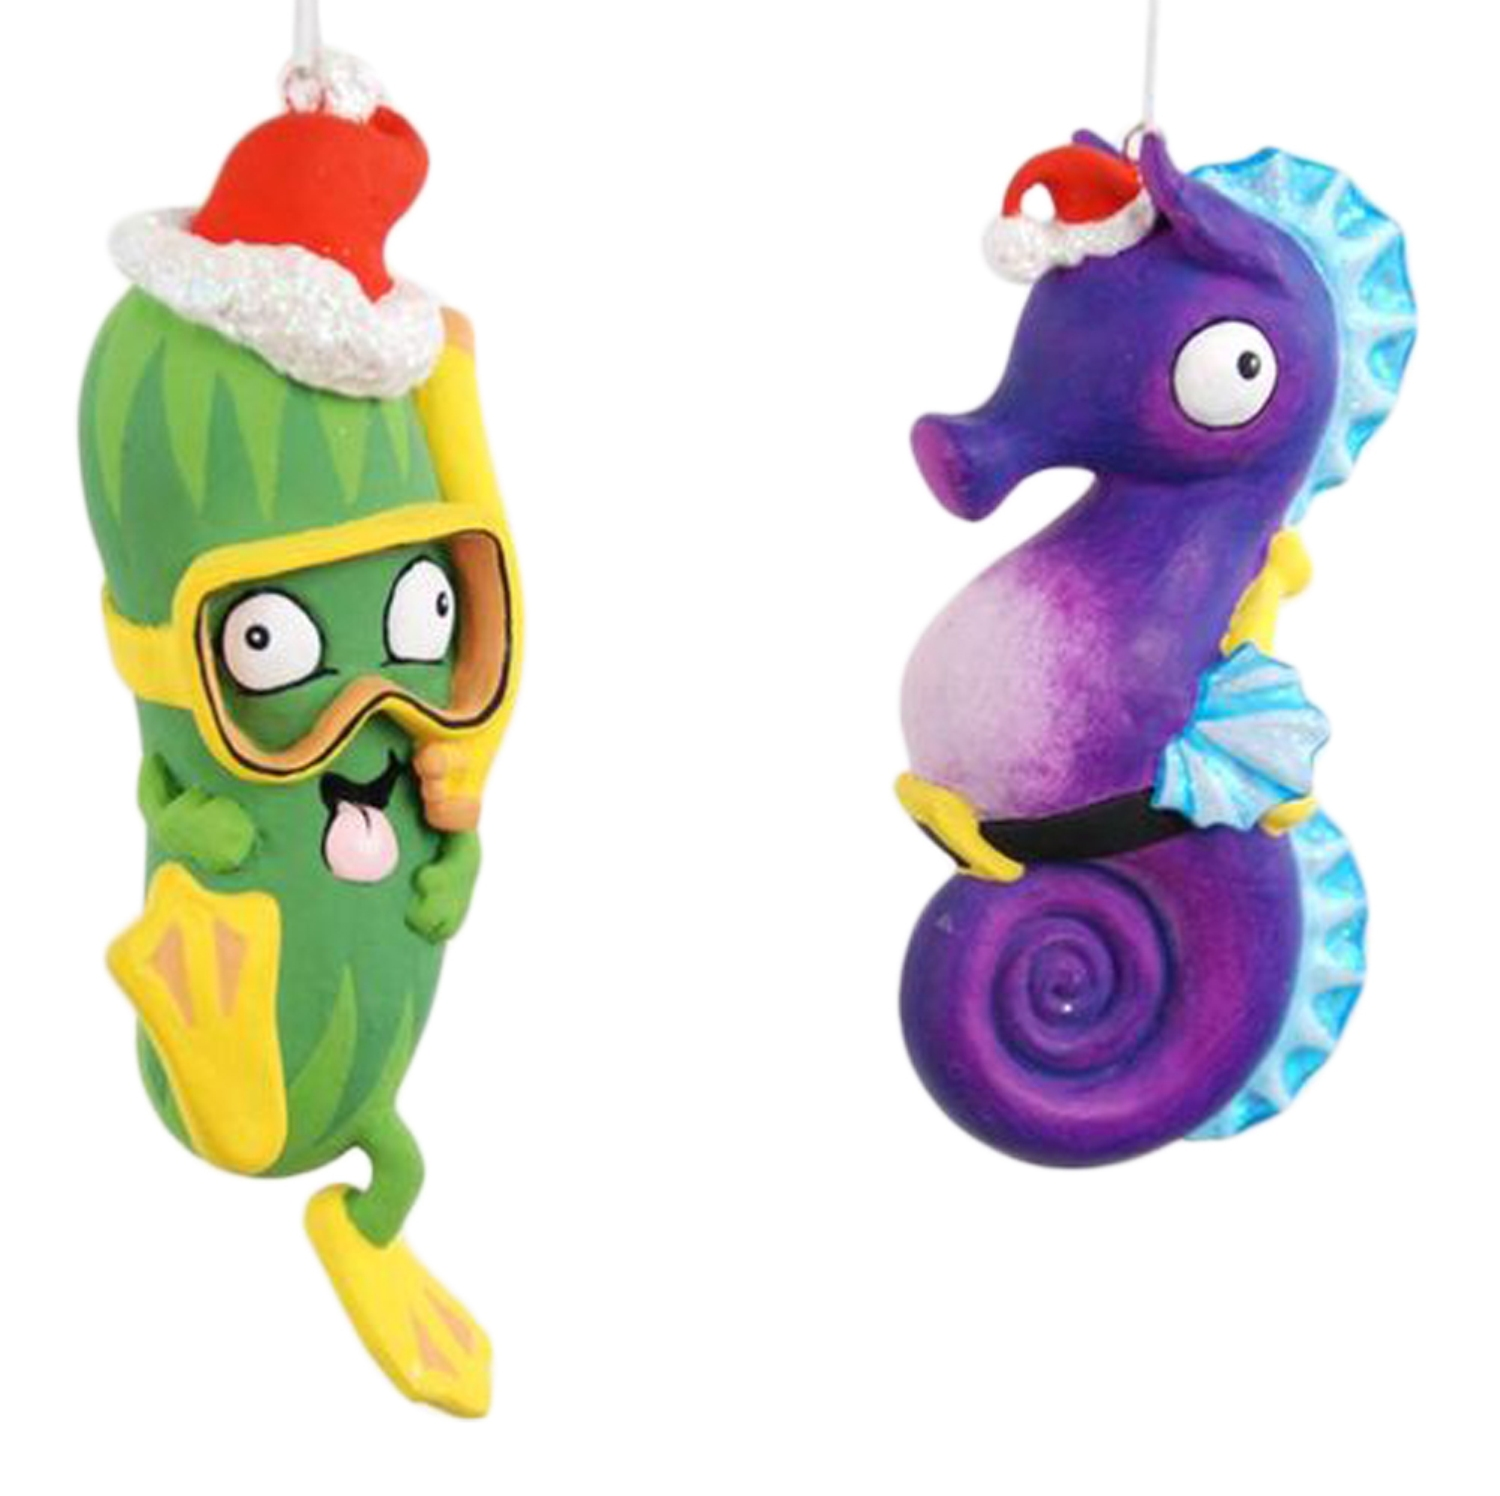 Coastal Purple Seahorse and Green Scuba Sea Cucumber Christmas Ornament Set of 2